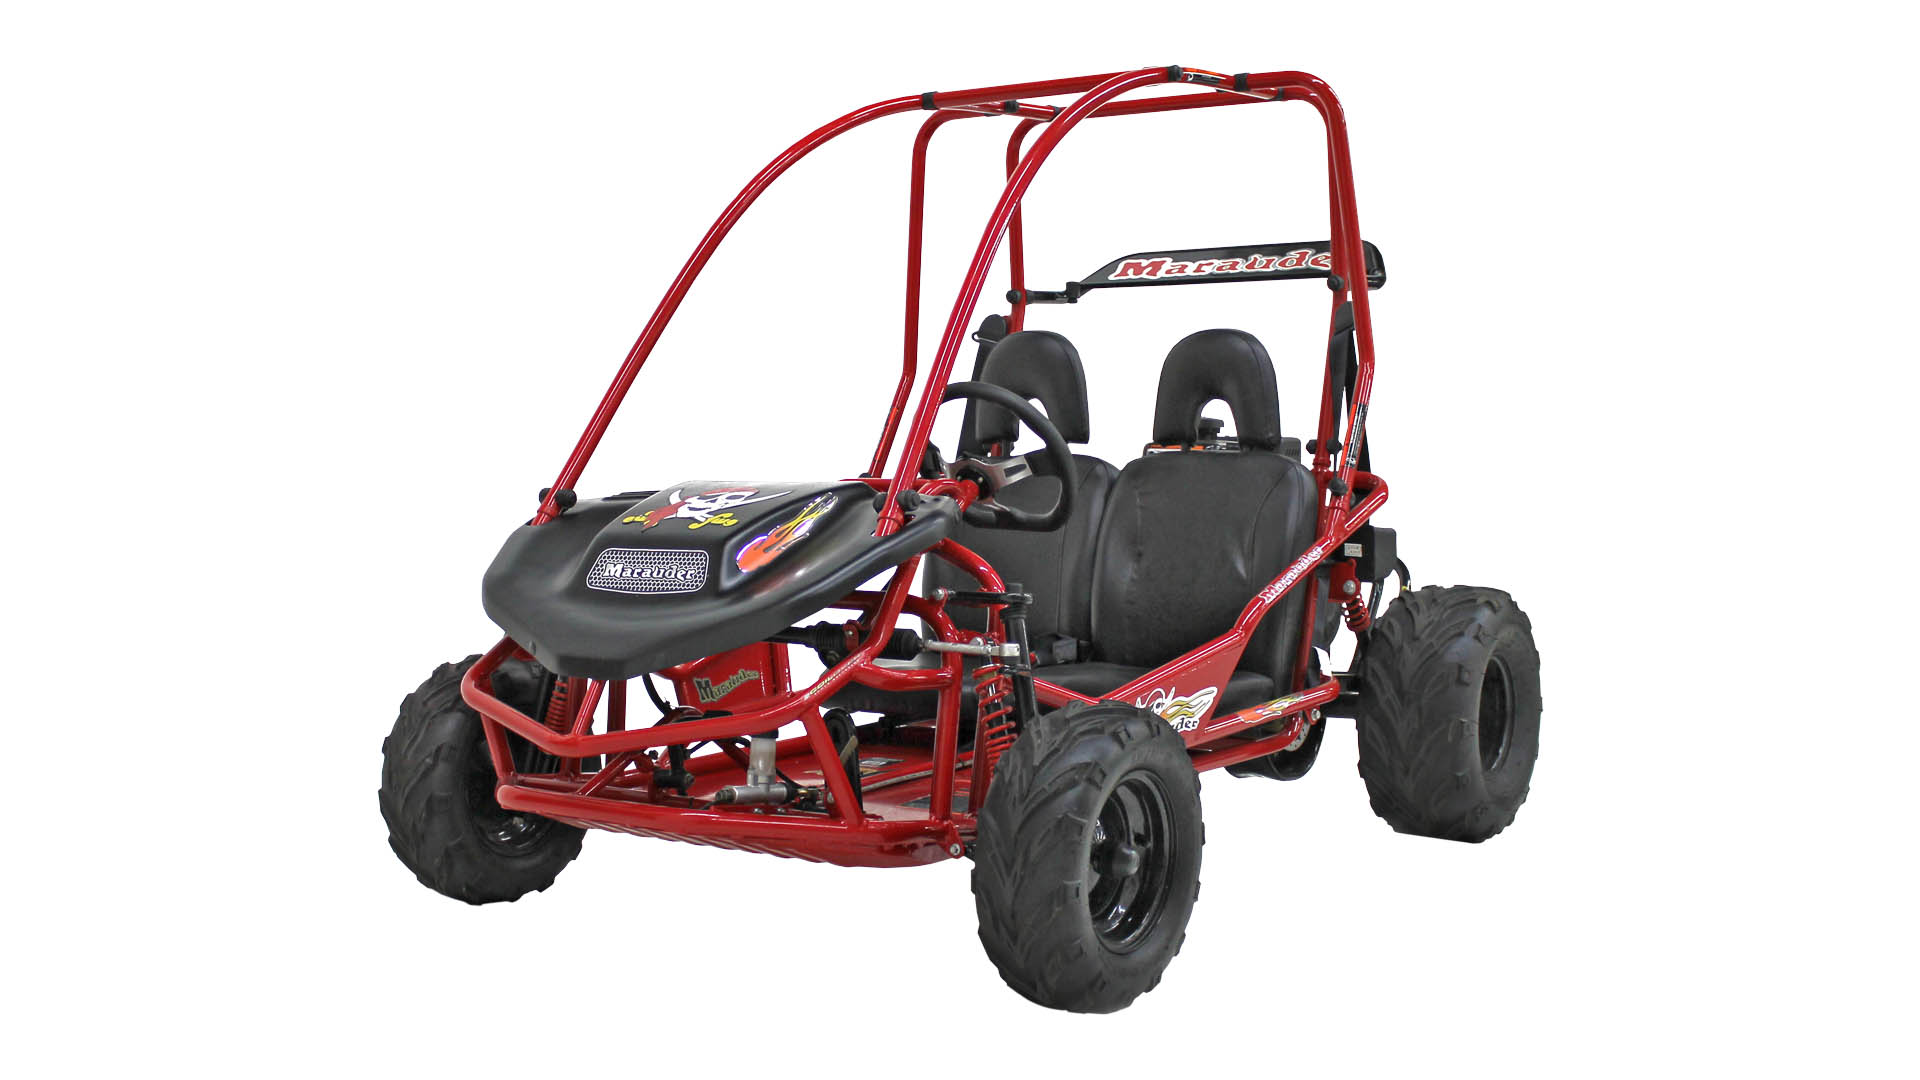 American Sportworks Marauder Off Road Go Kart for Kids